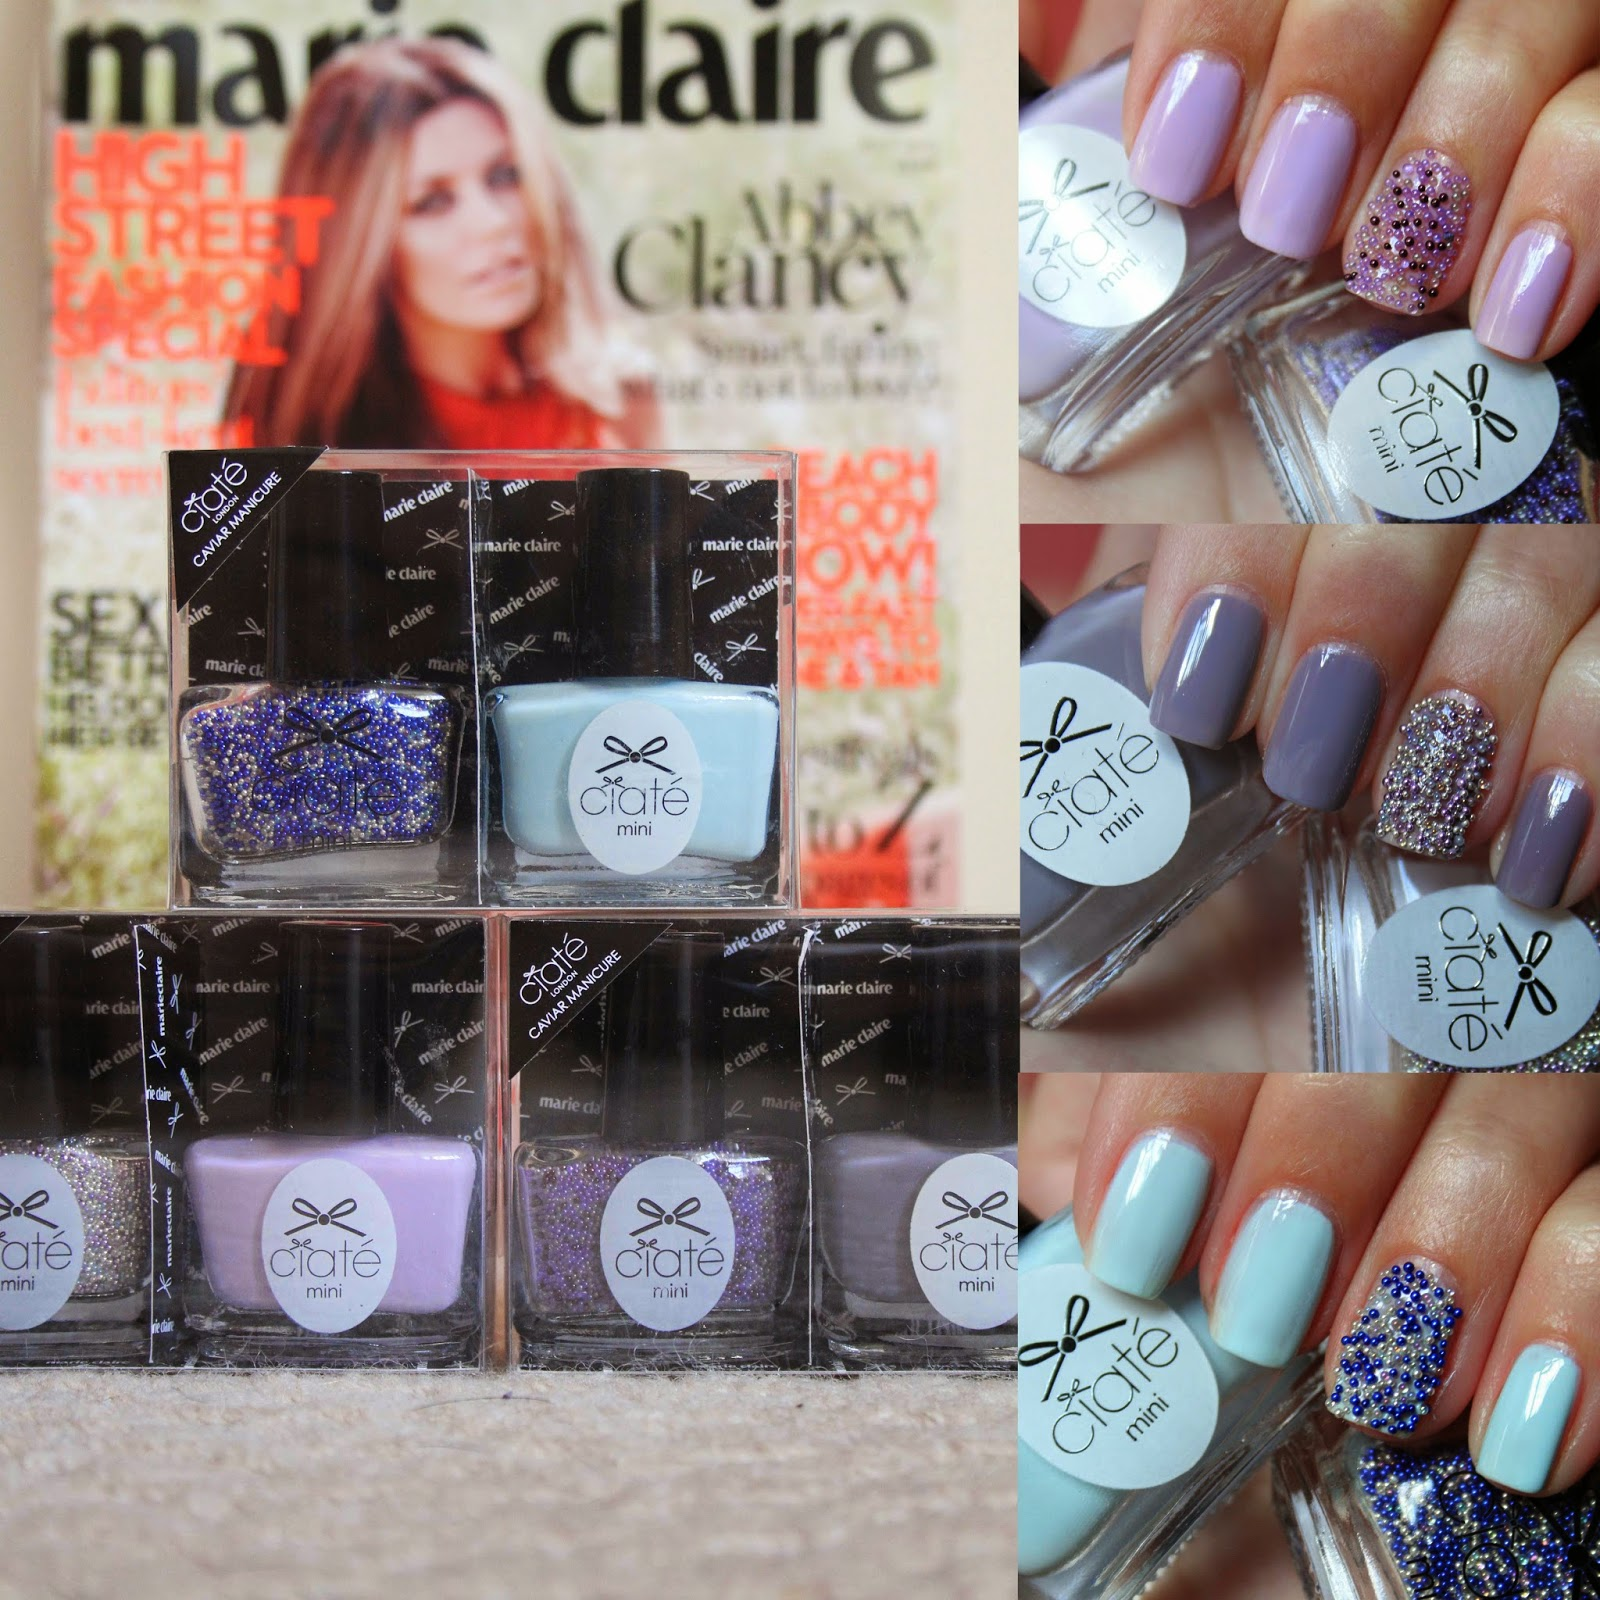 Elaine Nails: Free Ciate with Marie Claire